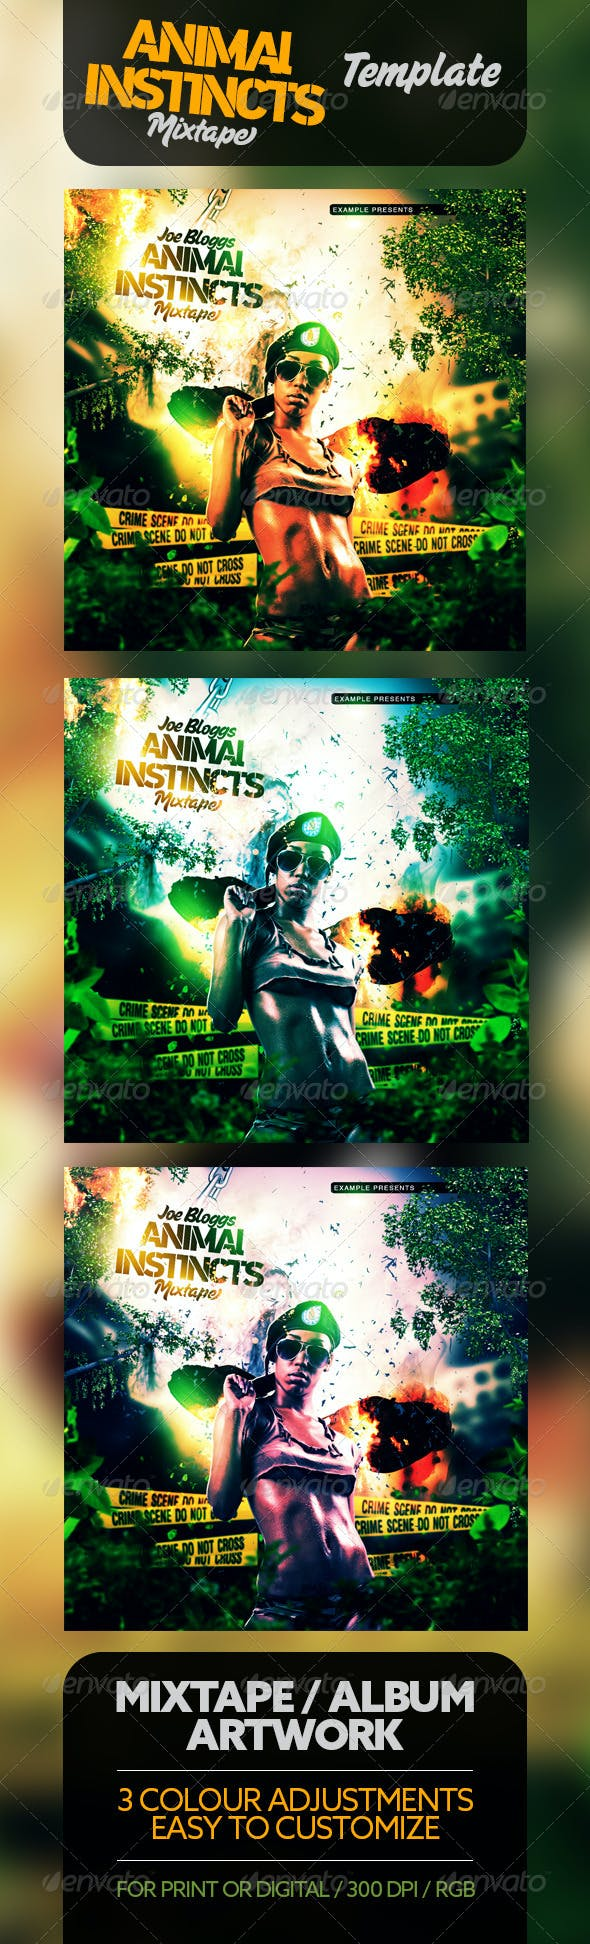 Animal Instincts 3 Full Movie animal instincts mixtape / cd template